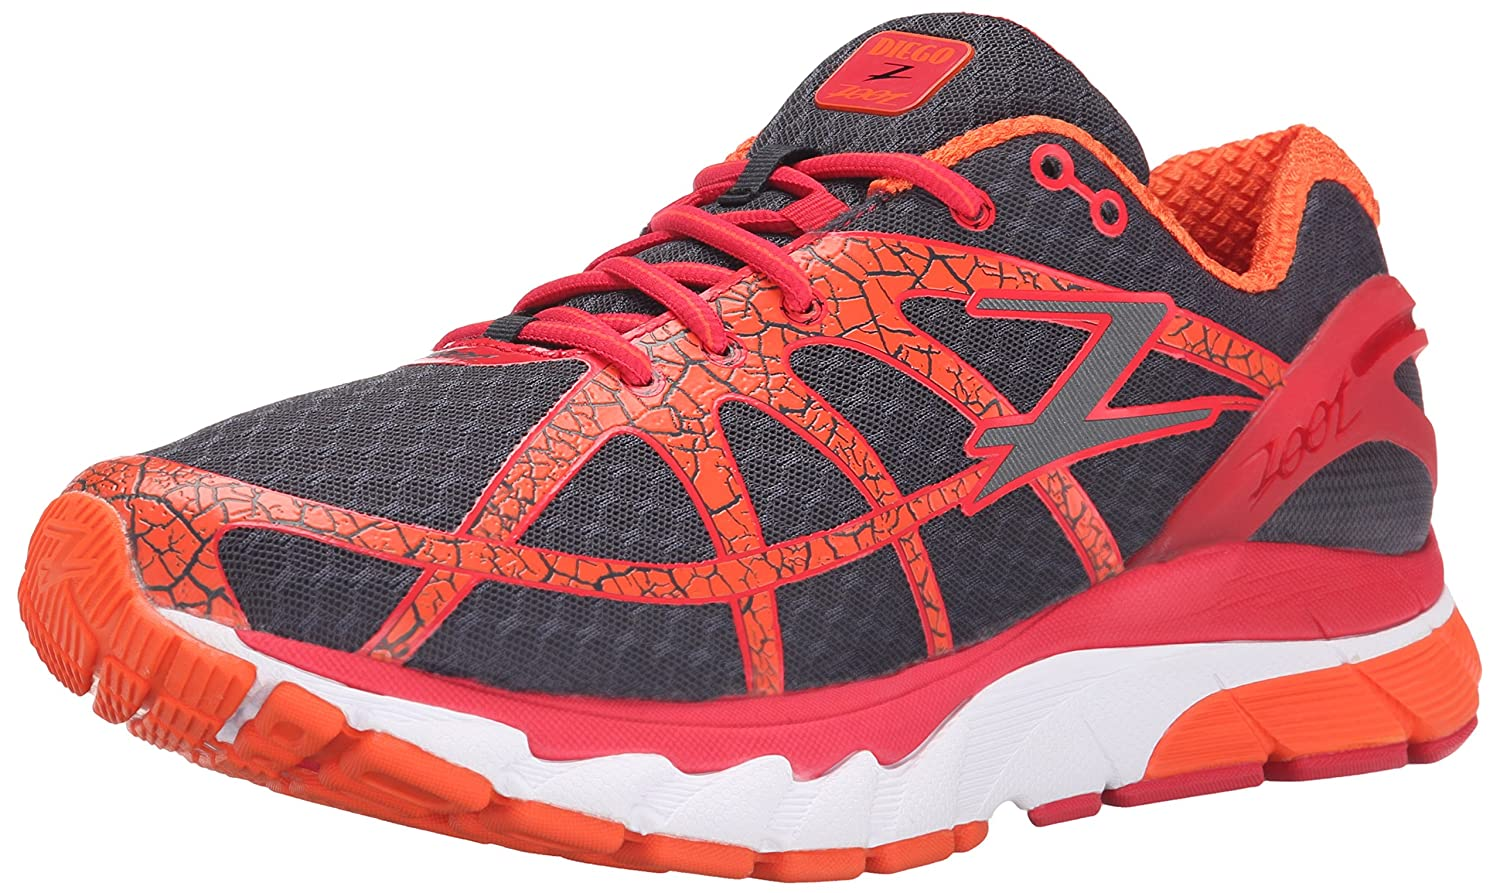 Zoot Men's Diego Running Shoe B00SRV06Y4 8.5 D(M) US|Solar Flare/Pewter/Zoot Red